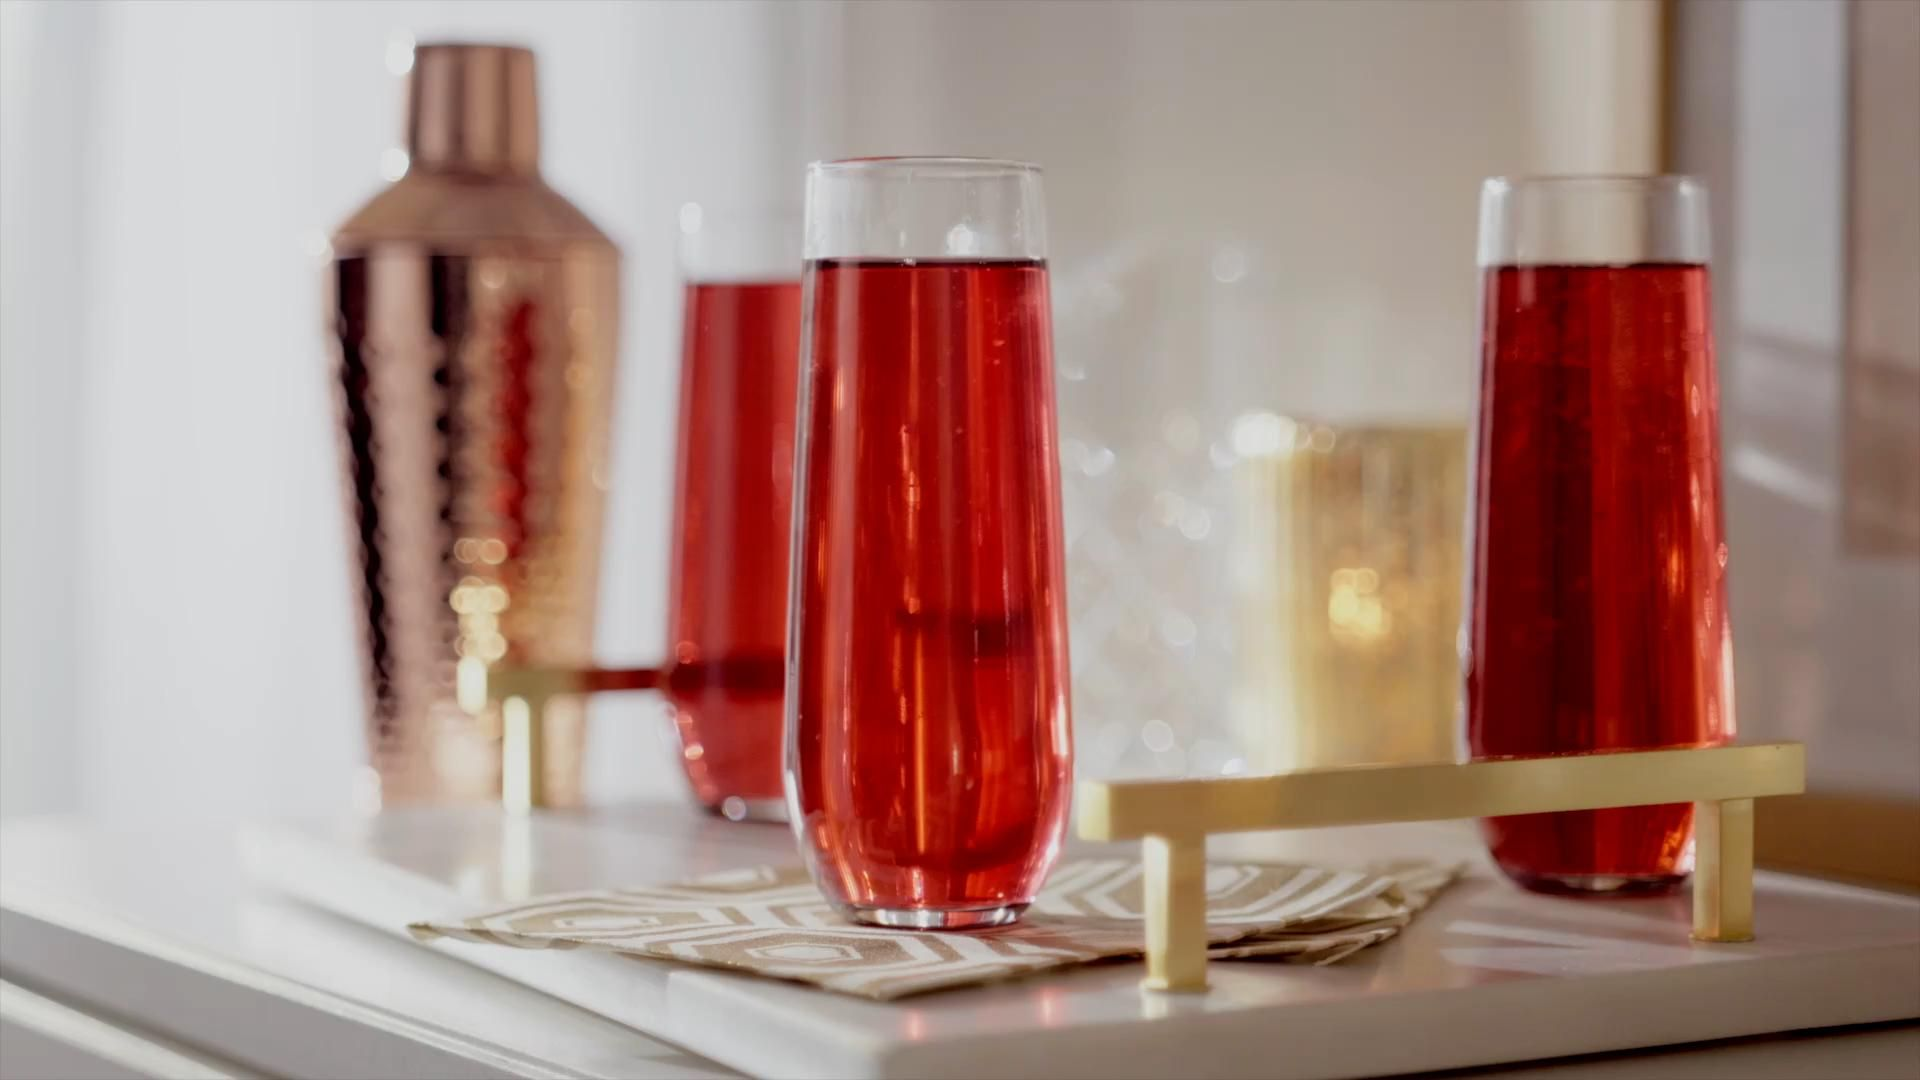 Tinsel your holiday toasts with fresh garnish, festive décor and fabulous eats. Your guests will happily raise their glass and clink. Get it all at Walmart.​